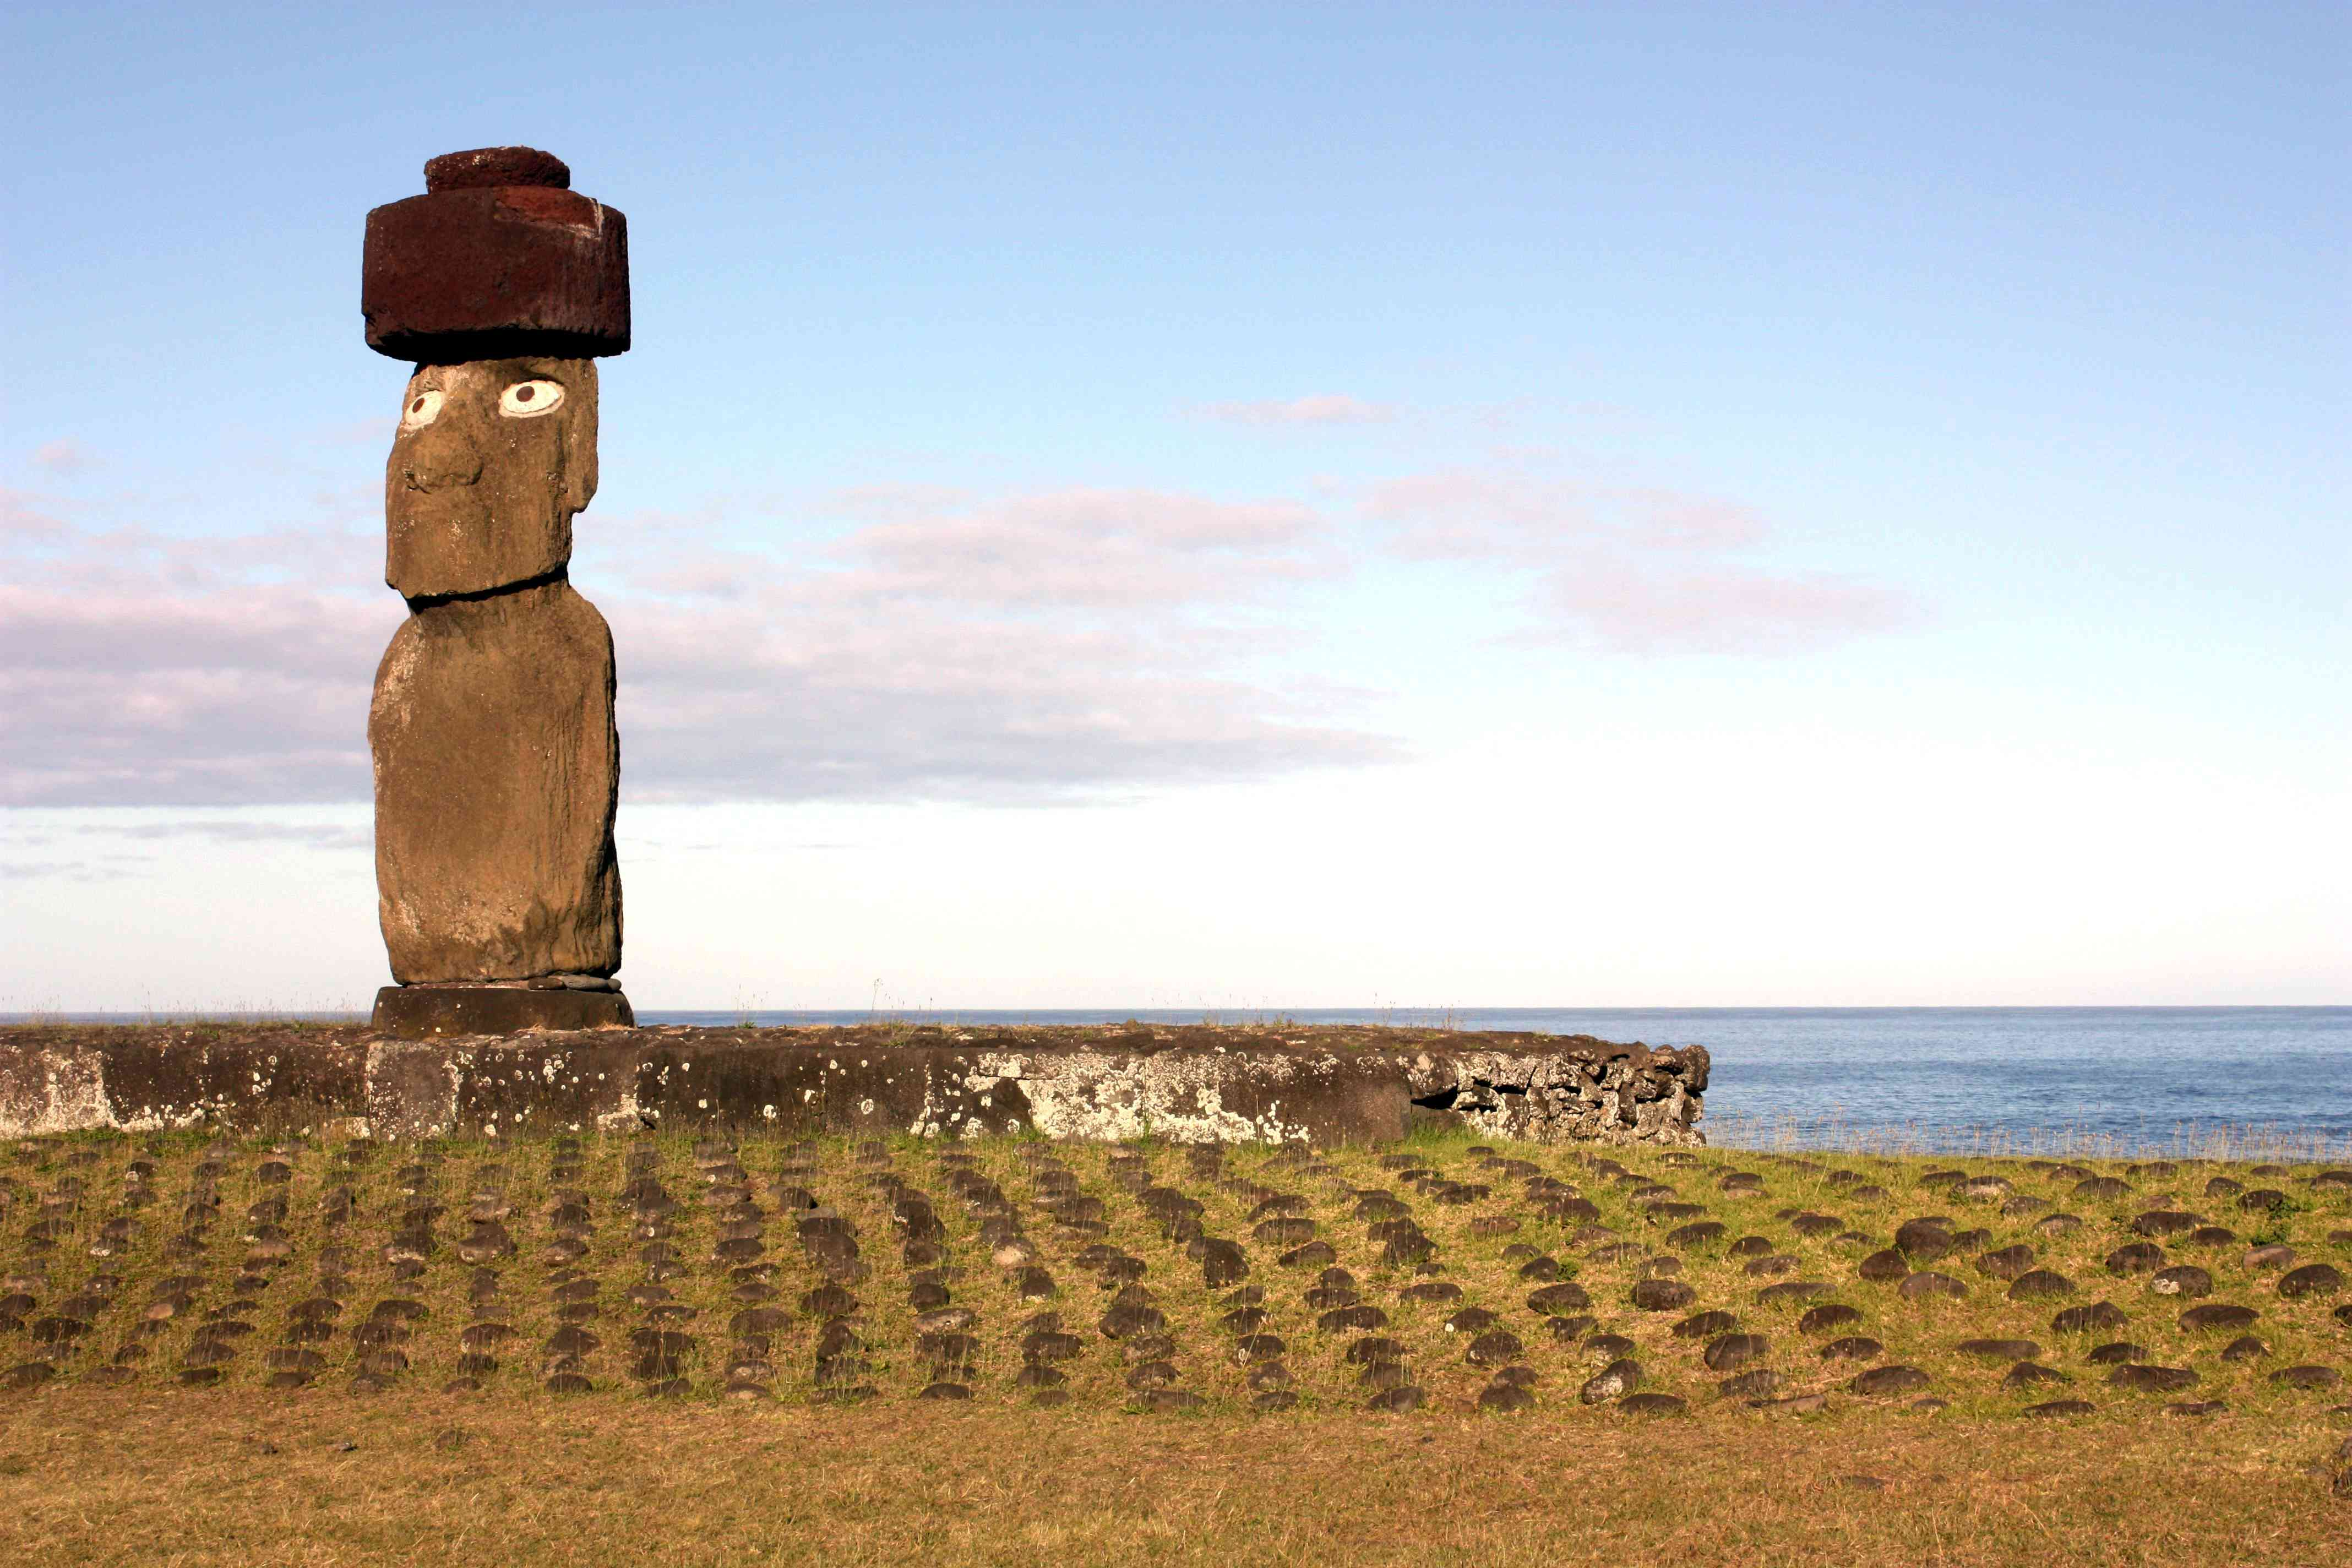 A moai with inset eyes and pukao headgear on an ahu platform with a ramp made of poro, round beach stones